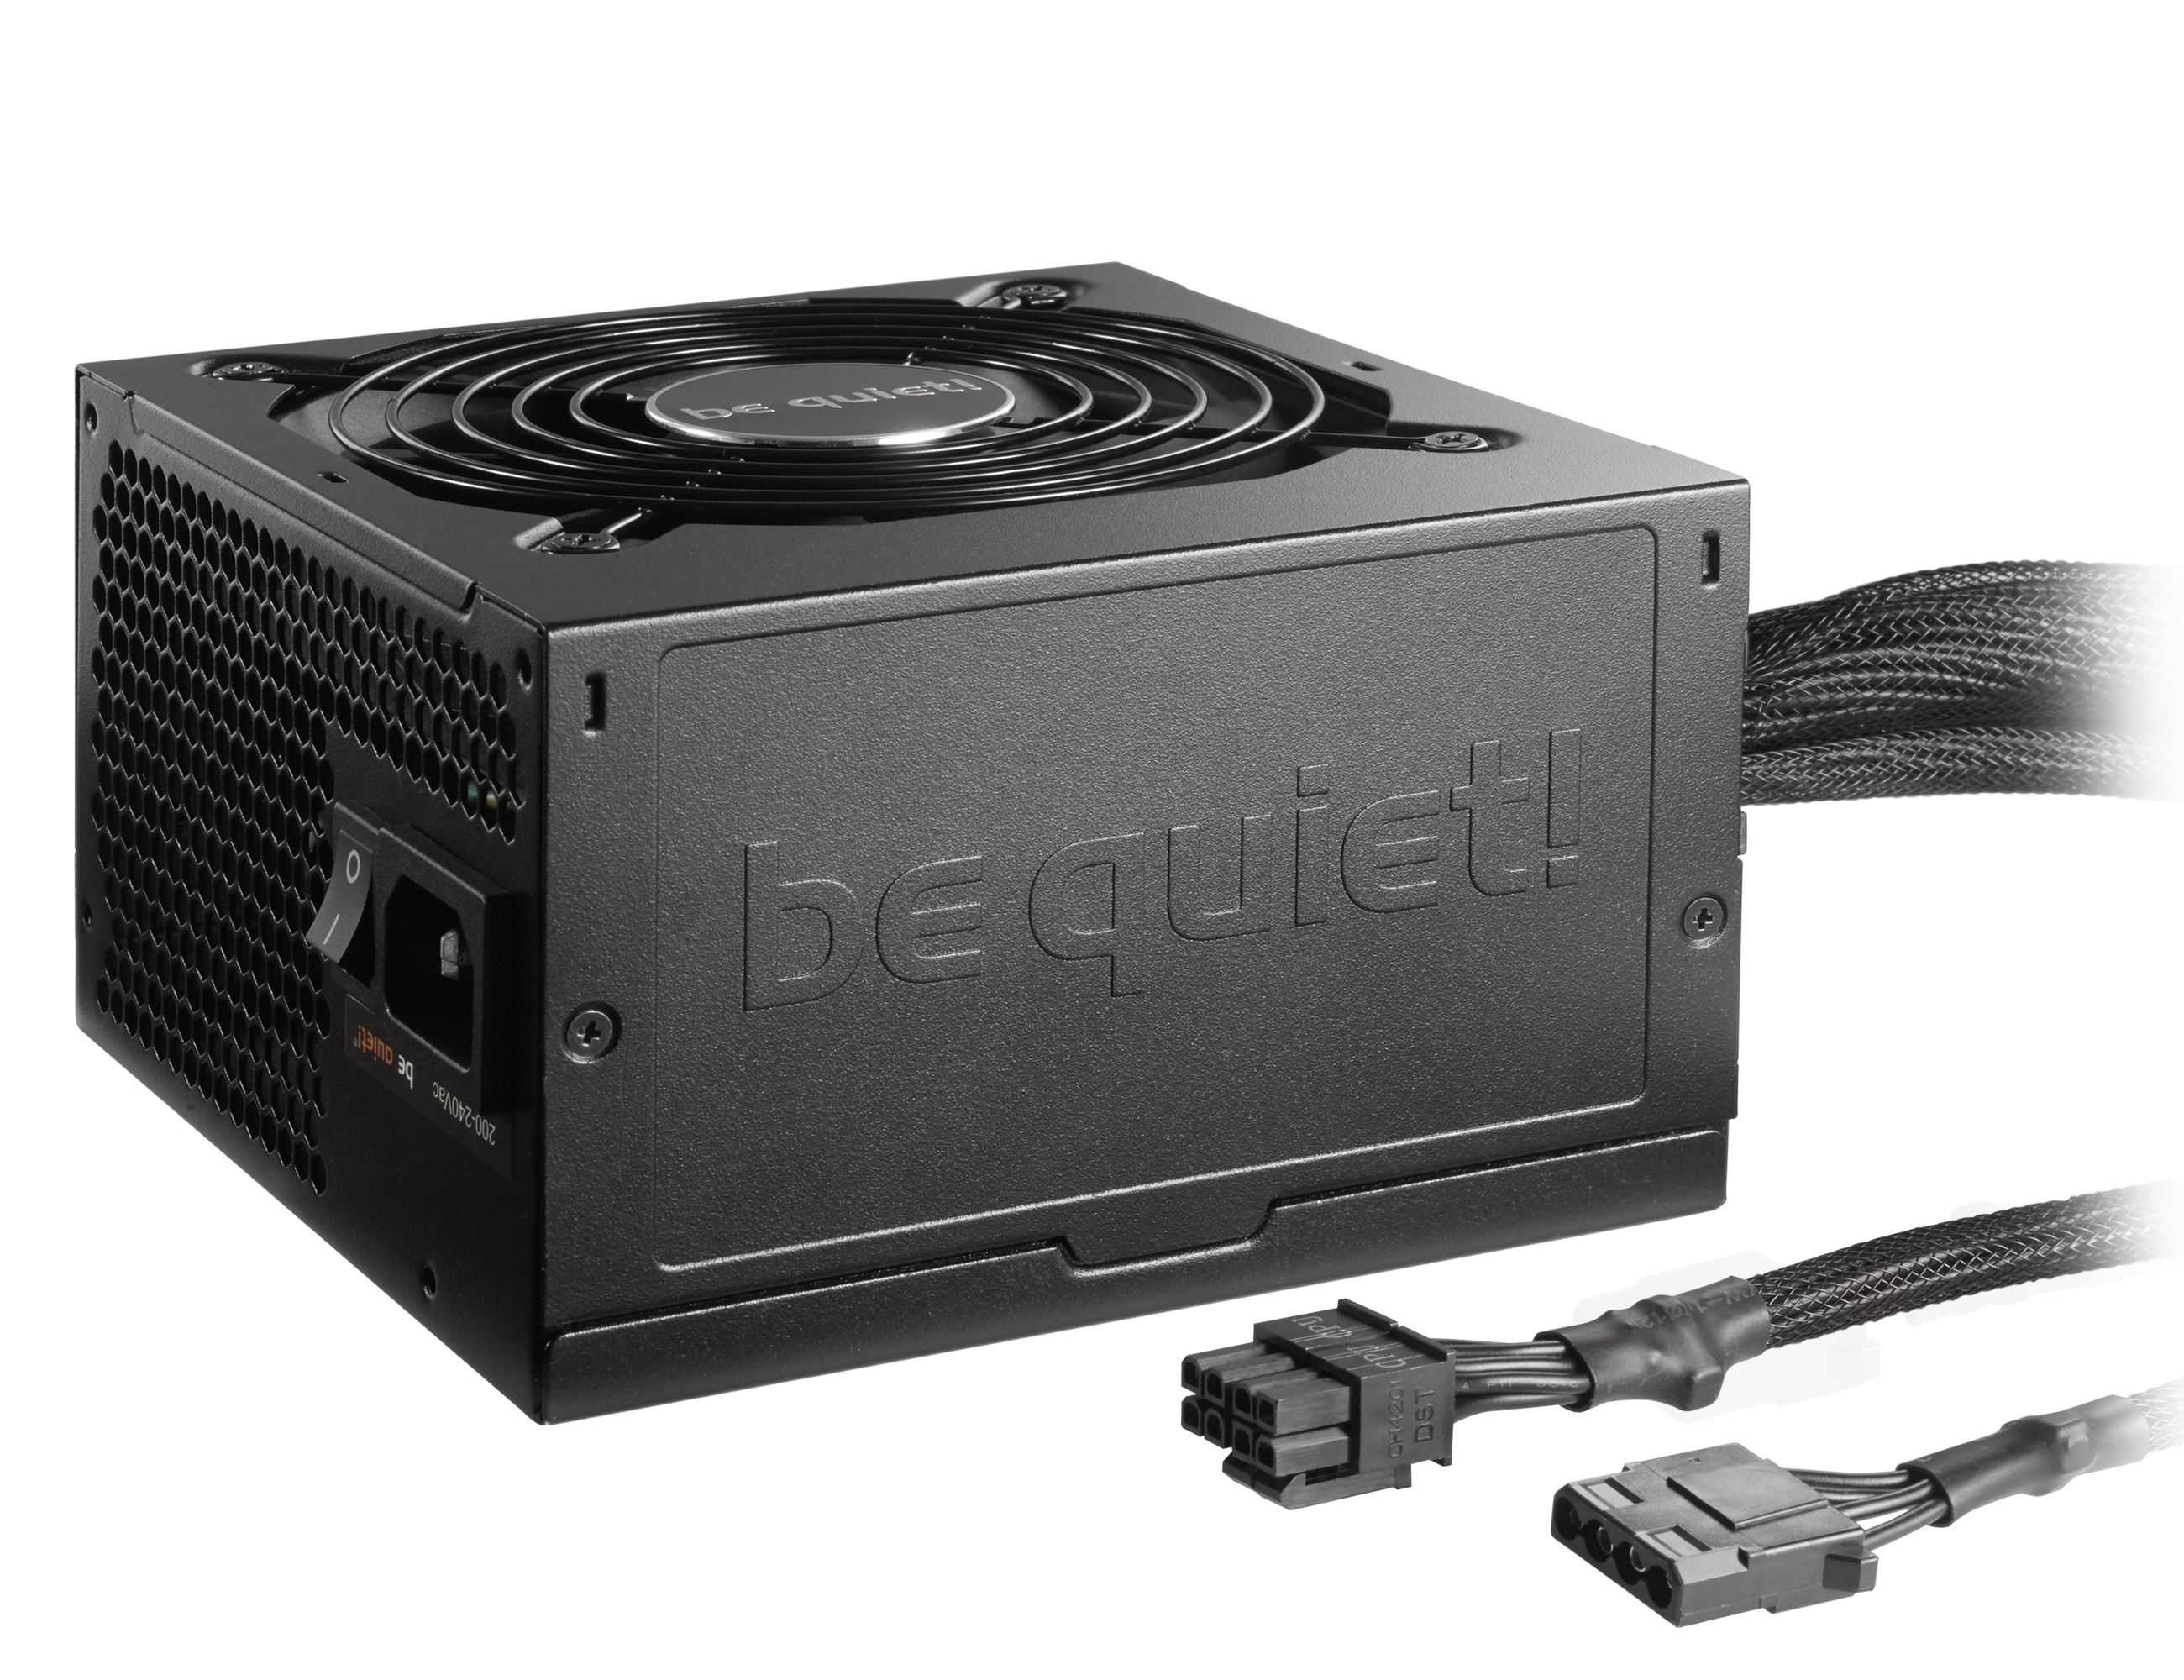 be quiet! System Power 9 700W, 80+ Bronze, ErP, Energy Star 6.1 APFC, Sleeved, 4xPCI-Ex, 6xSATA, 2xPATA, DC-DC // S9-700W